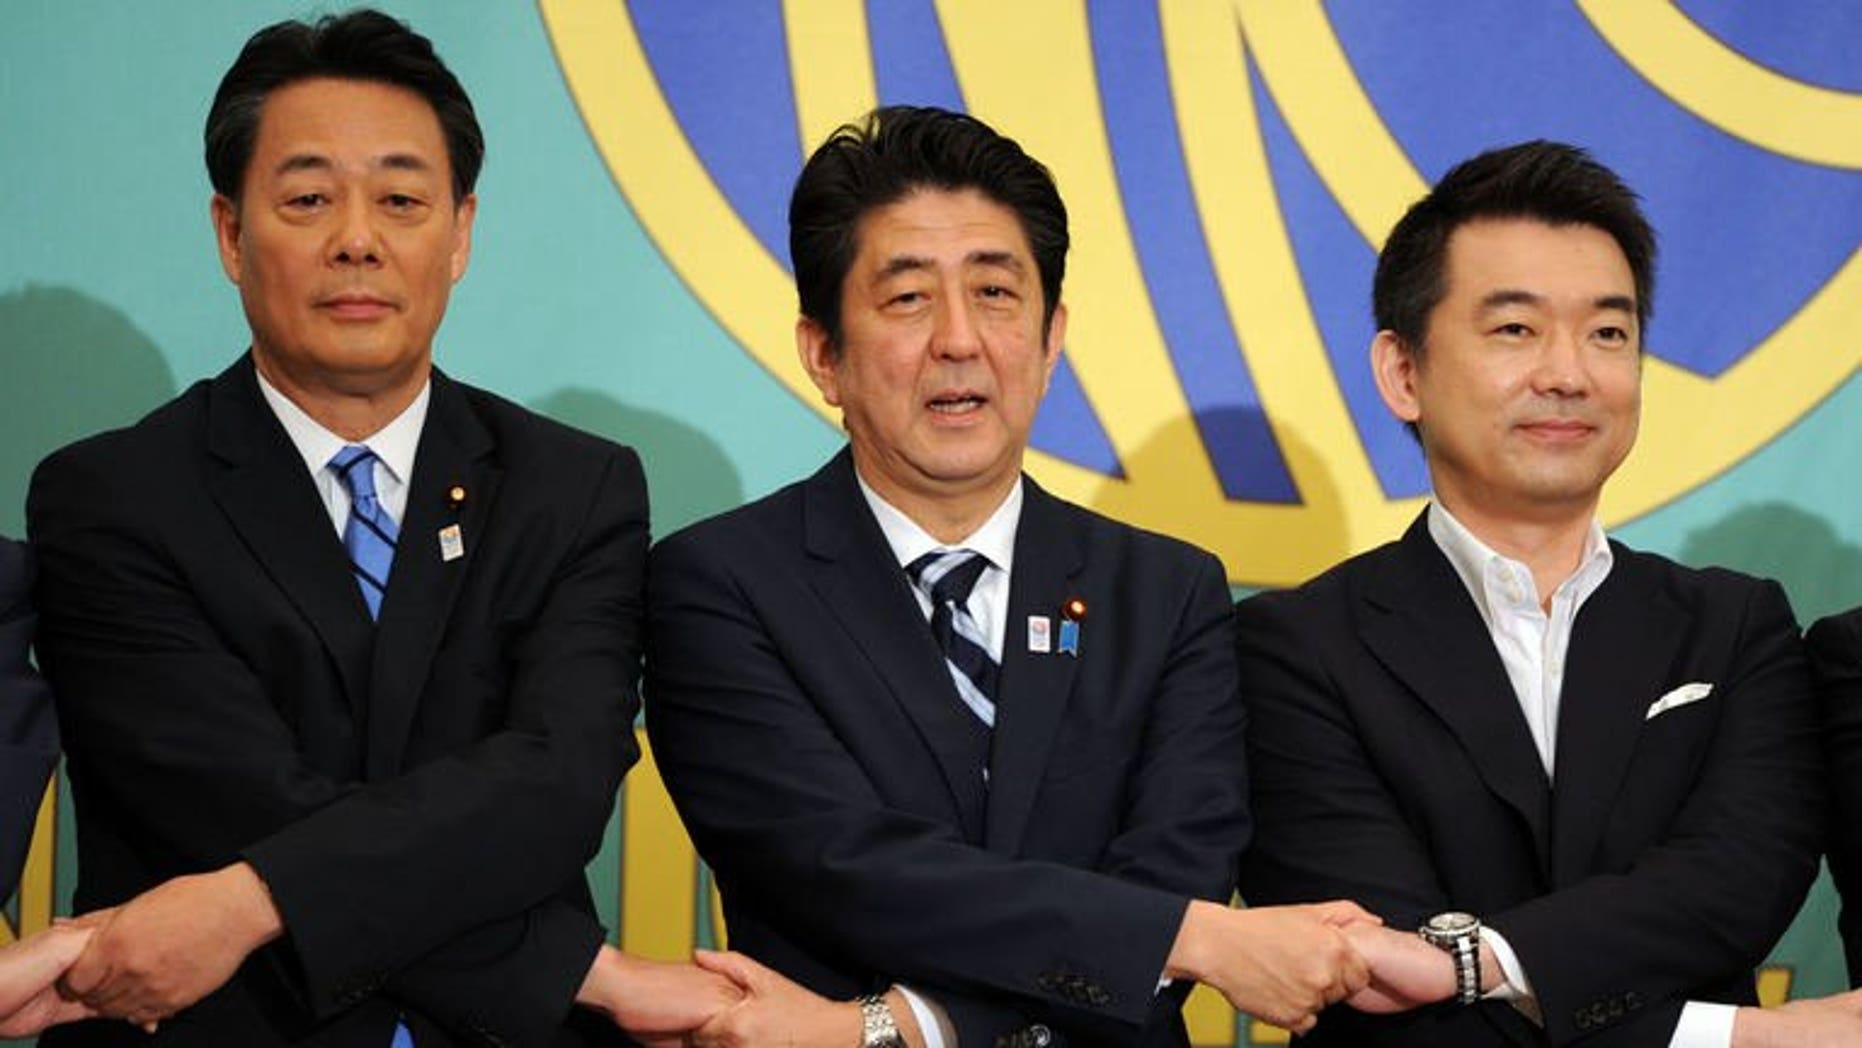 Japanese Prime Minister and ruling Liberal Democratic Party (LDP) leader Shinzo Abe (C) shakes hands with Democratic Party of Japan (DPJ) leader Banri Kaieda (L) and co-leader of Japan Restoration Party Toru Hashimoto prior to their political debate in Tokyo on July 3, 2013. Campaigning begins Thursday in an election expected to give Abe an almost unbeatable hand.